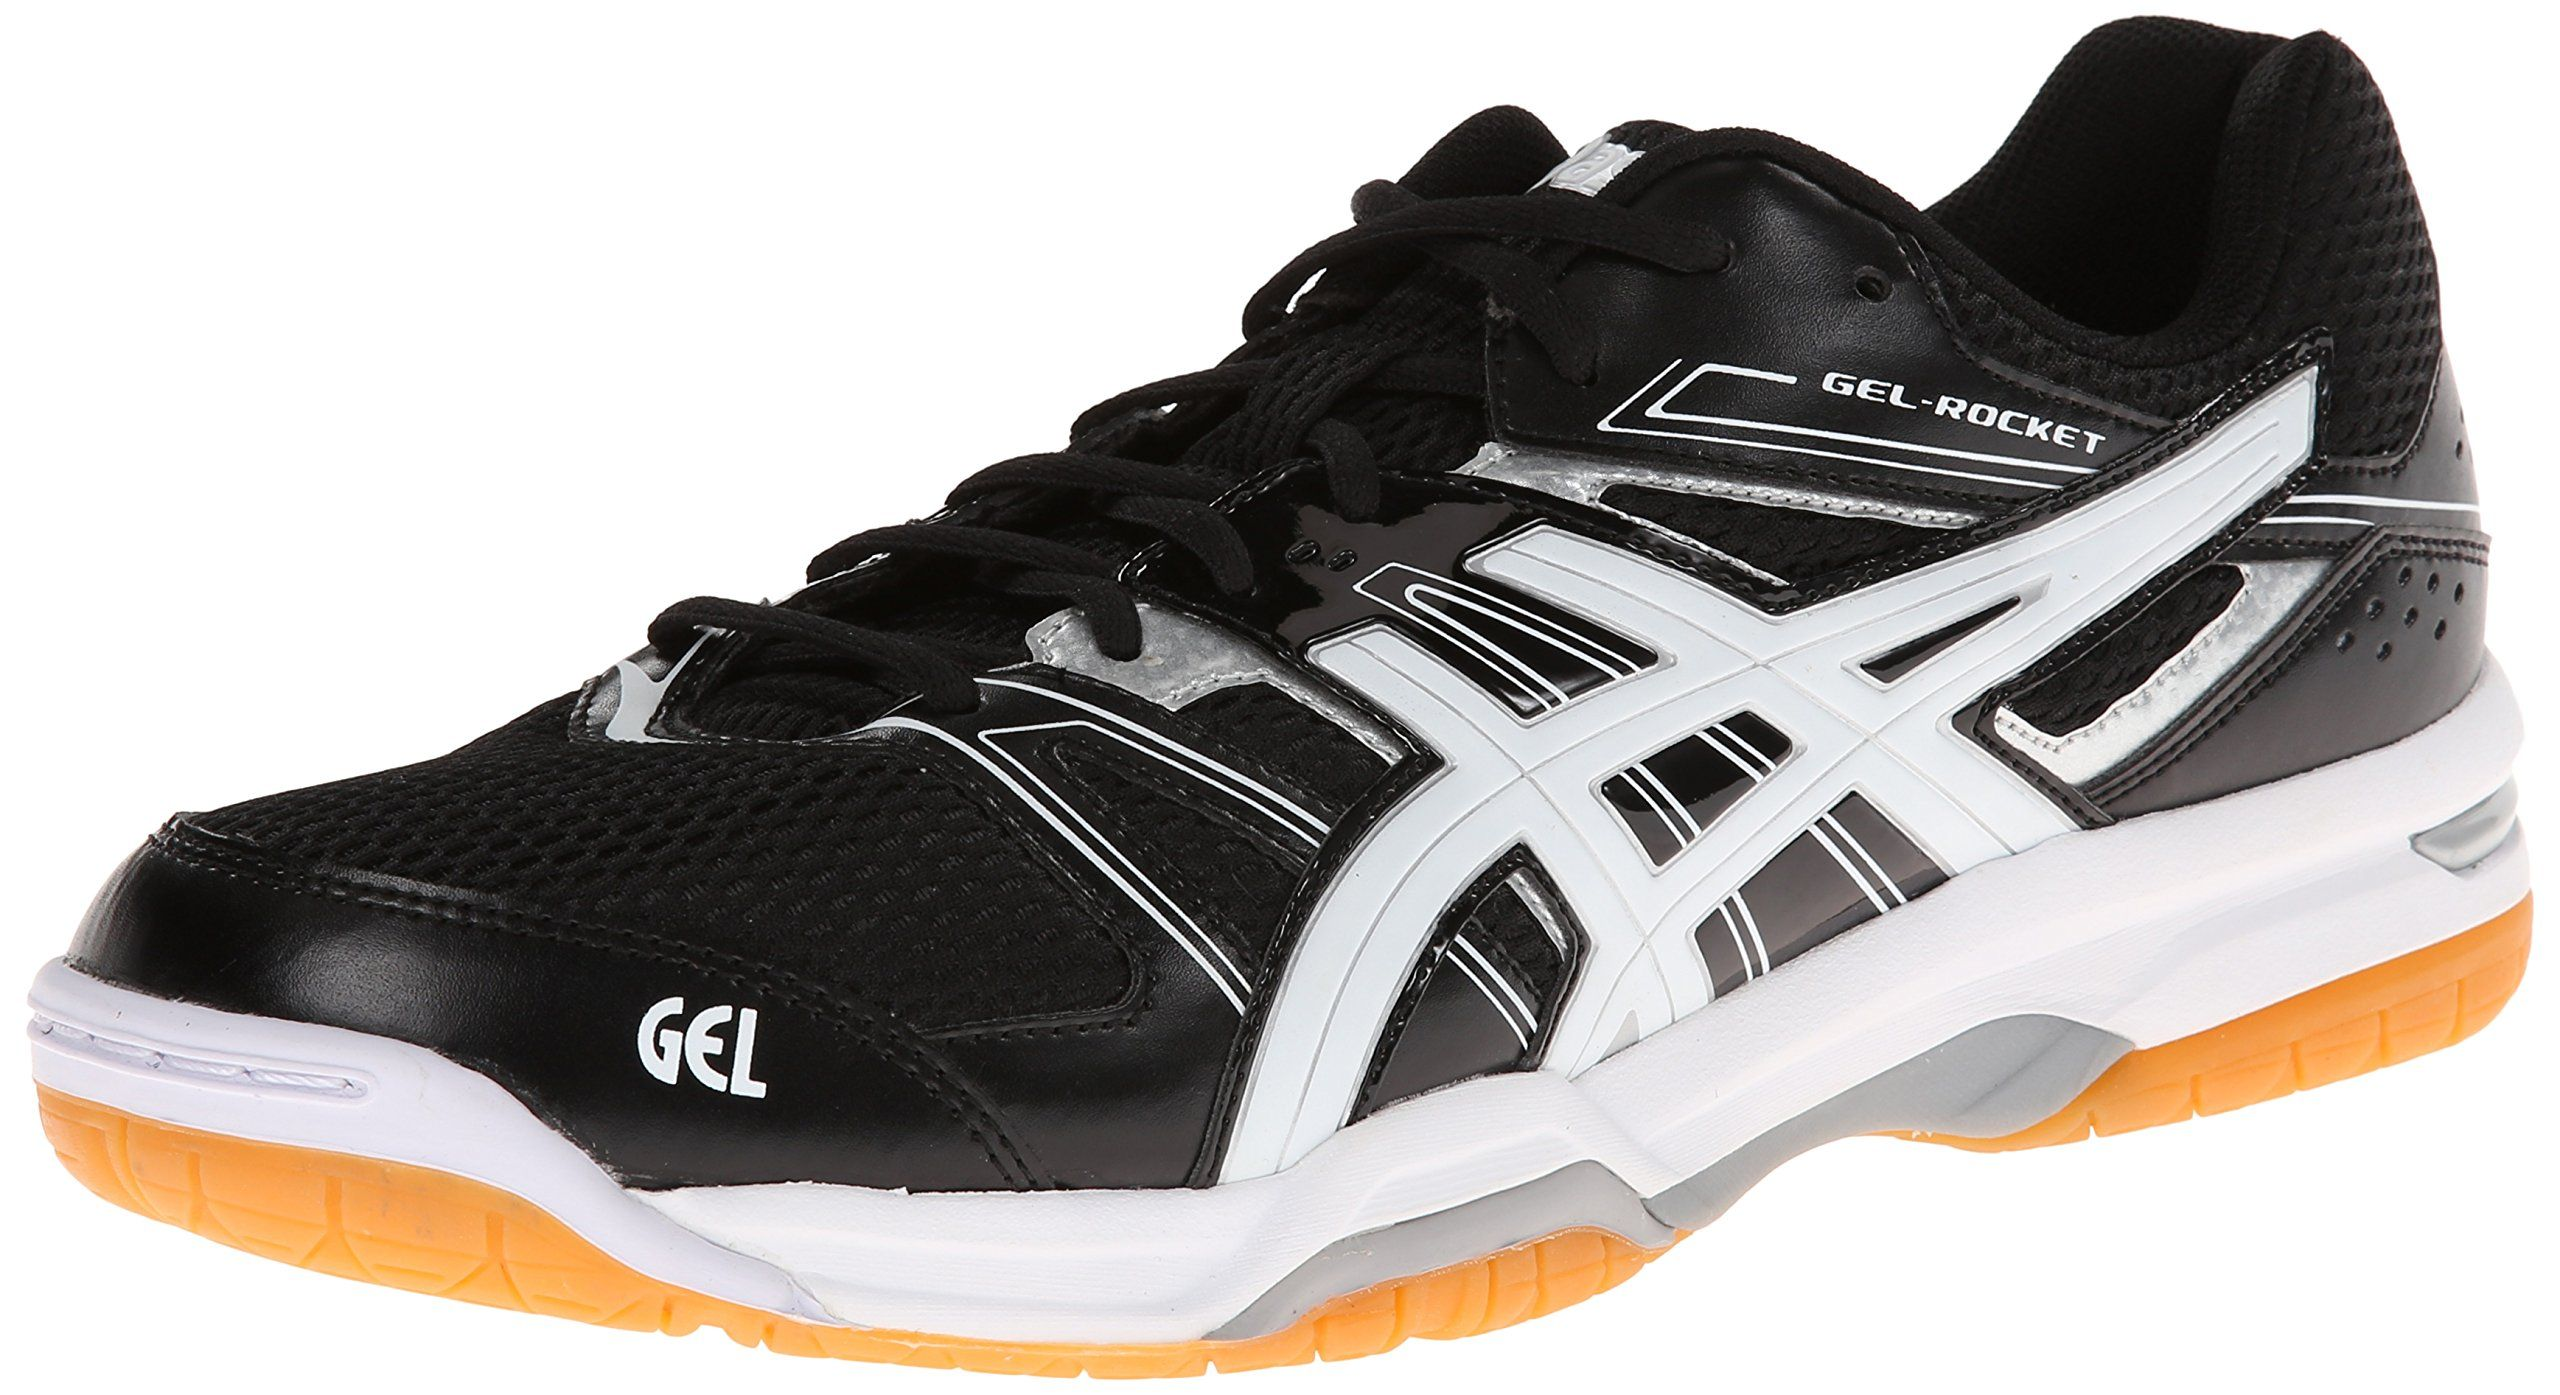 Asics Men S Gel Rocket 7 Volley Ball Shoe Black White Silver 6 M Us Volleyball Shoes Best Volleyball Shoes Asics Men